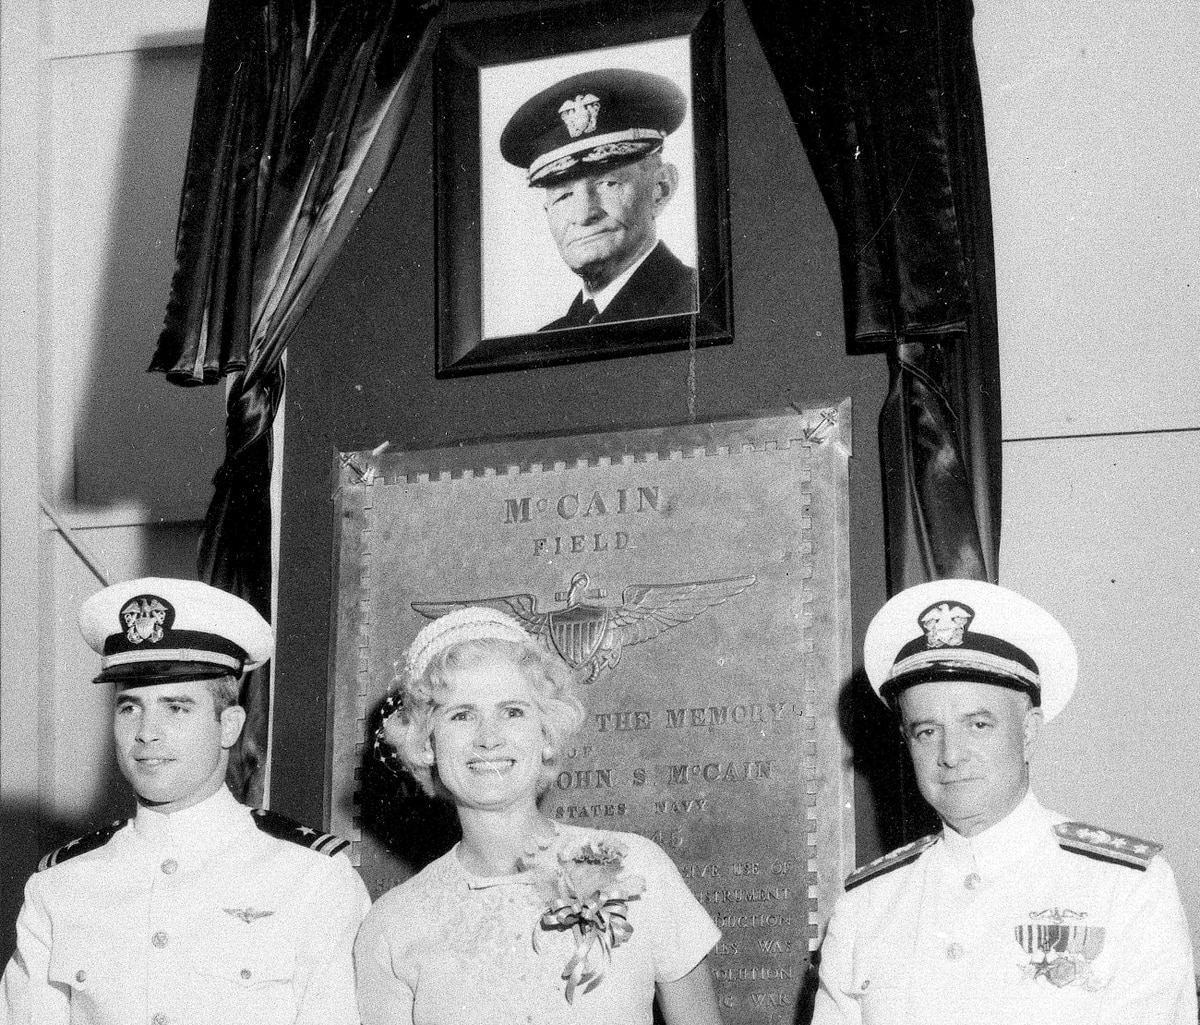 John Mccain Latest News Photos And Videos: Navy Ship In Collision Named For McCain's Dad, Grandfather